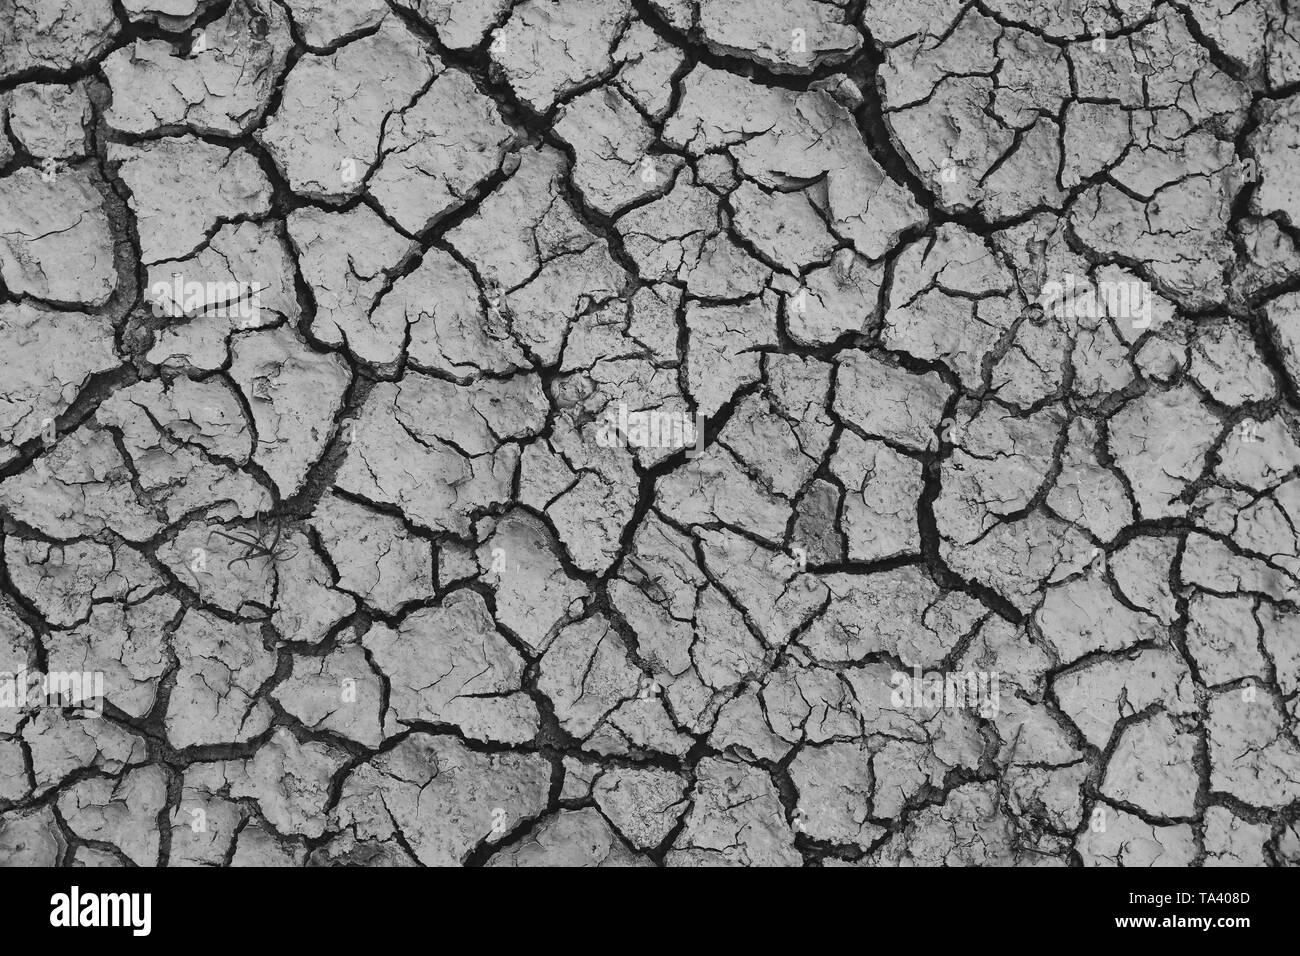 Land with dry and cracked ground. Global warming background - Stock Image